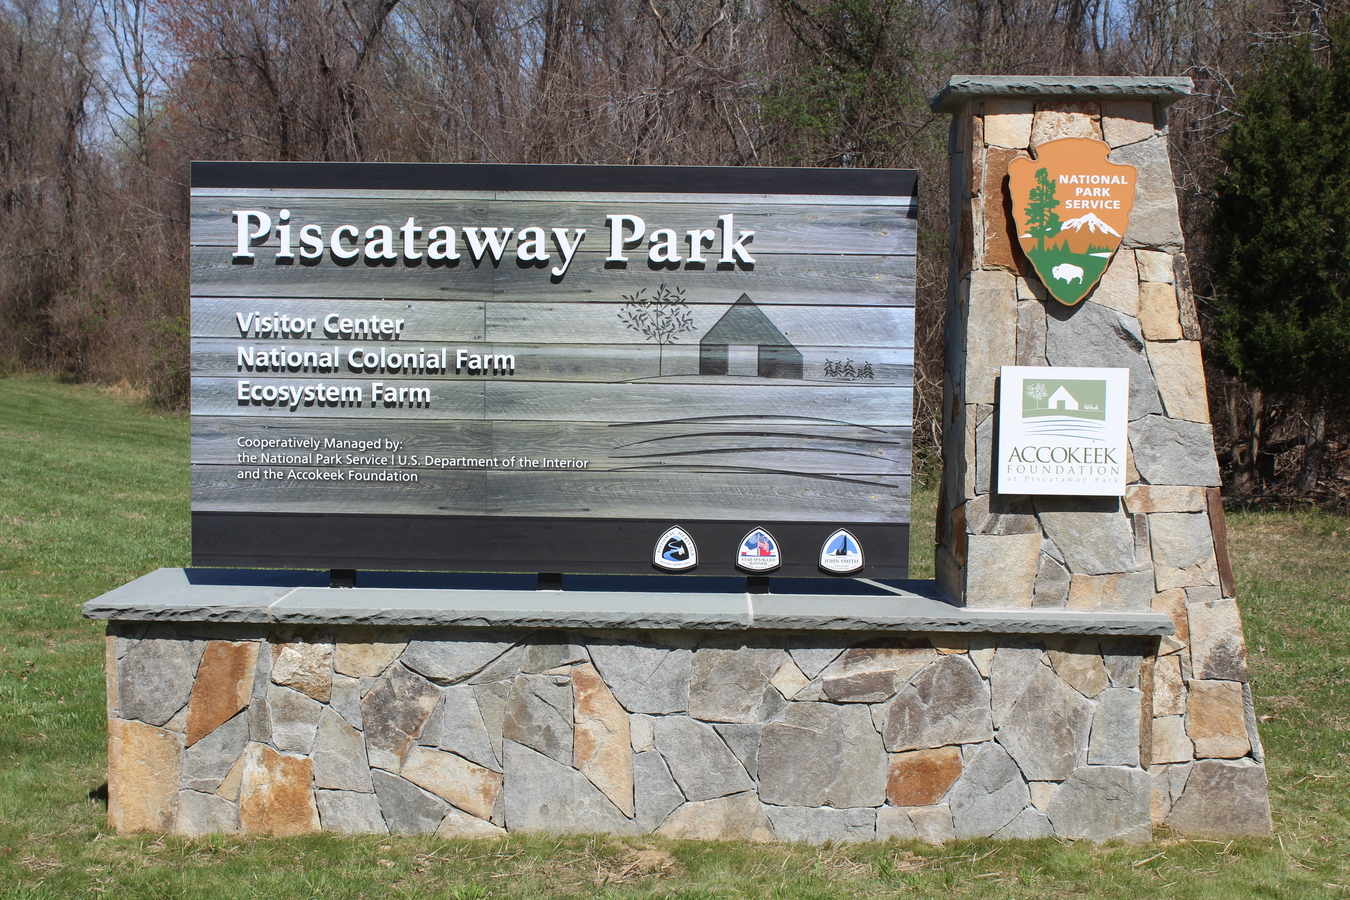 5b Accokeek Sign : Piscataway Park Sign was Designed Built and Installed in 6 weeks.